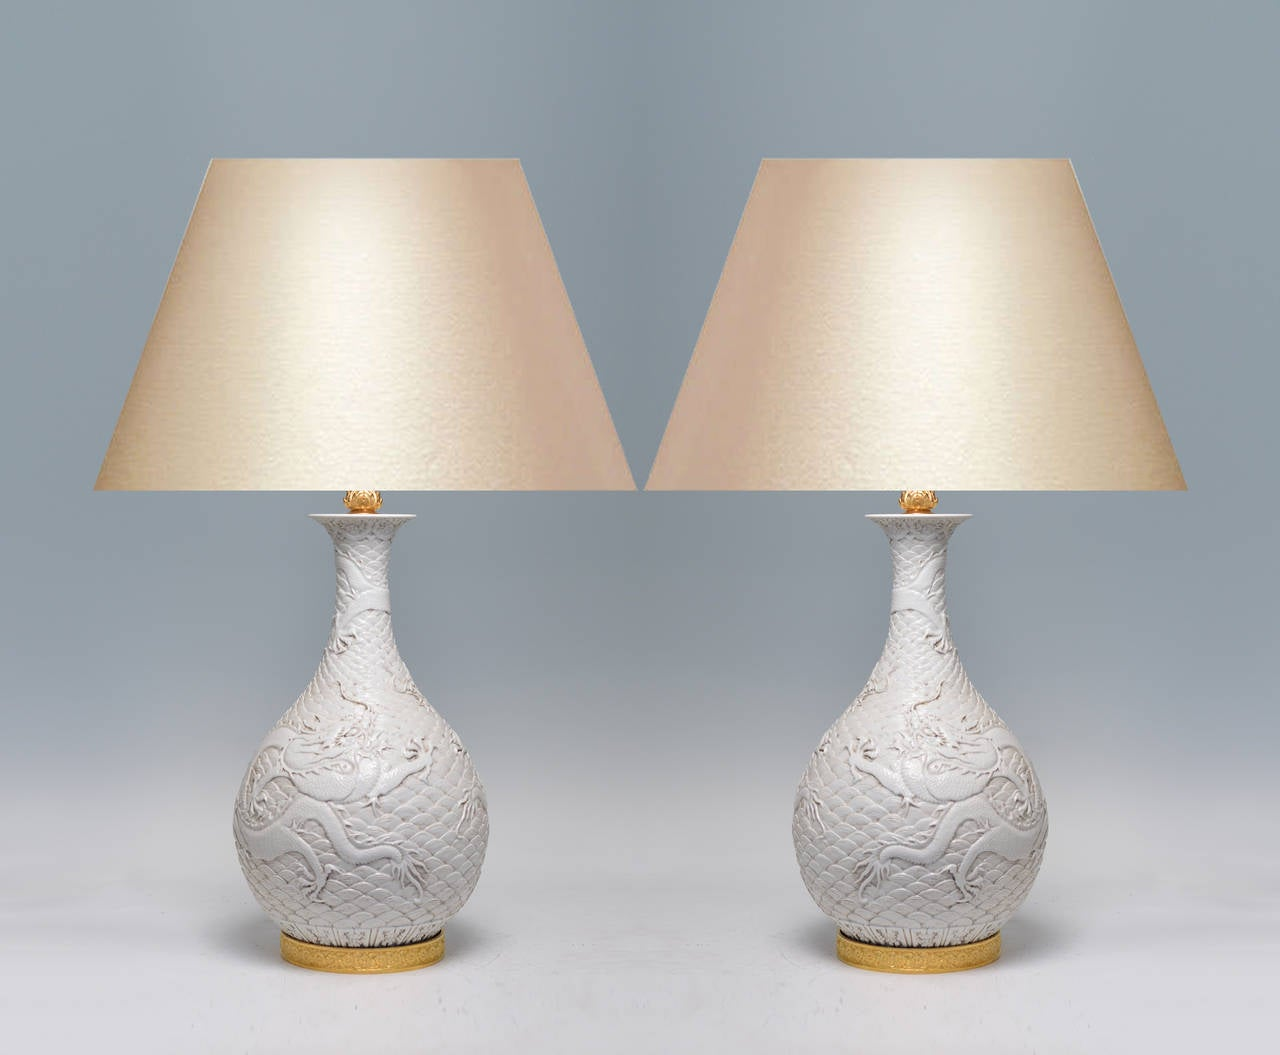 Fine carved white porcelain vases decorated with dragons surrounded by clouds, Gilt bronze bases. To the porcelain: 20.5